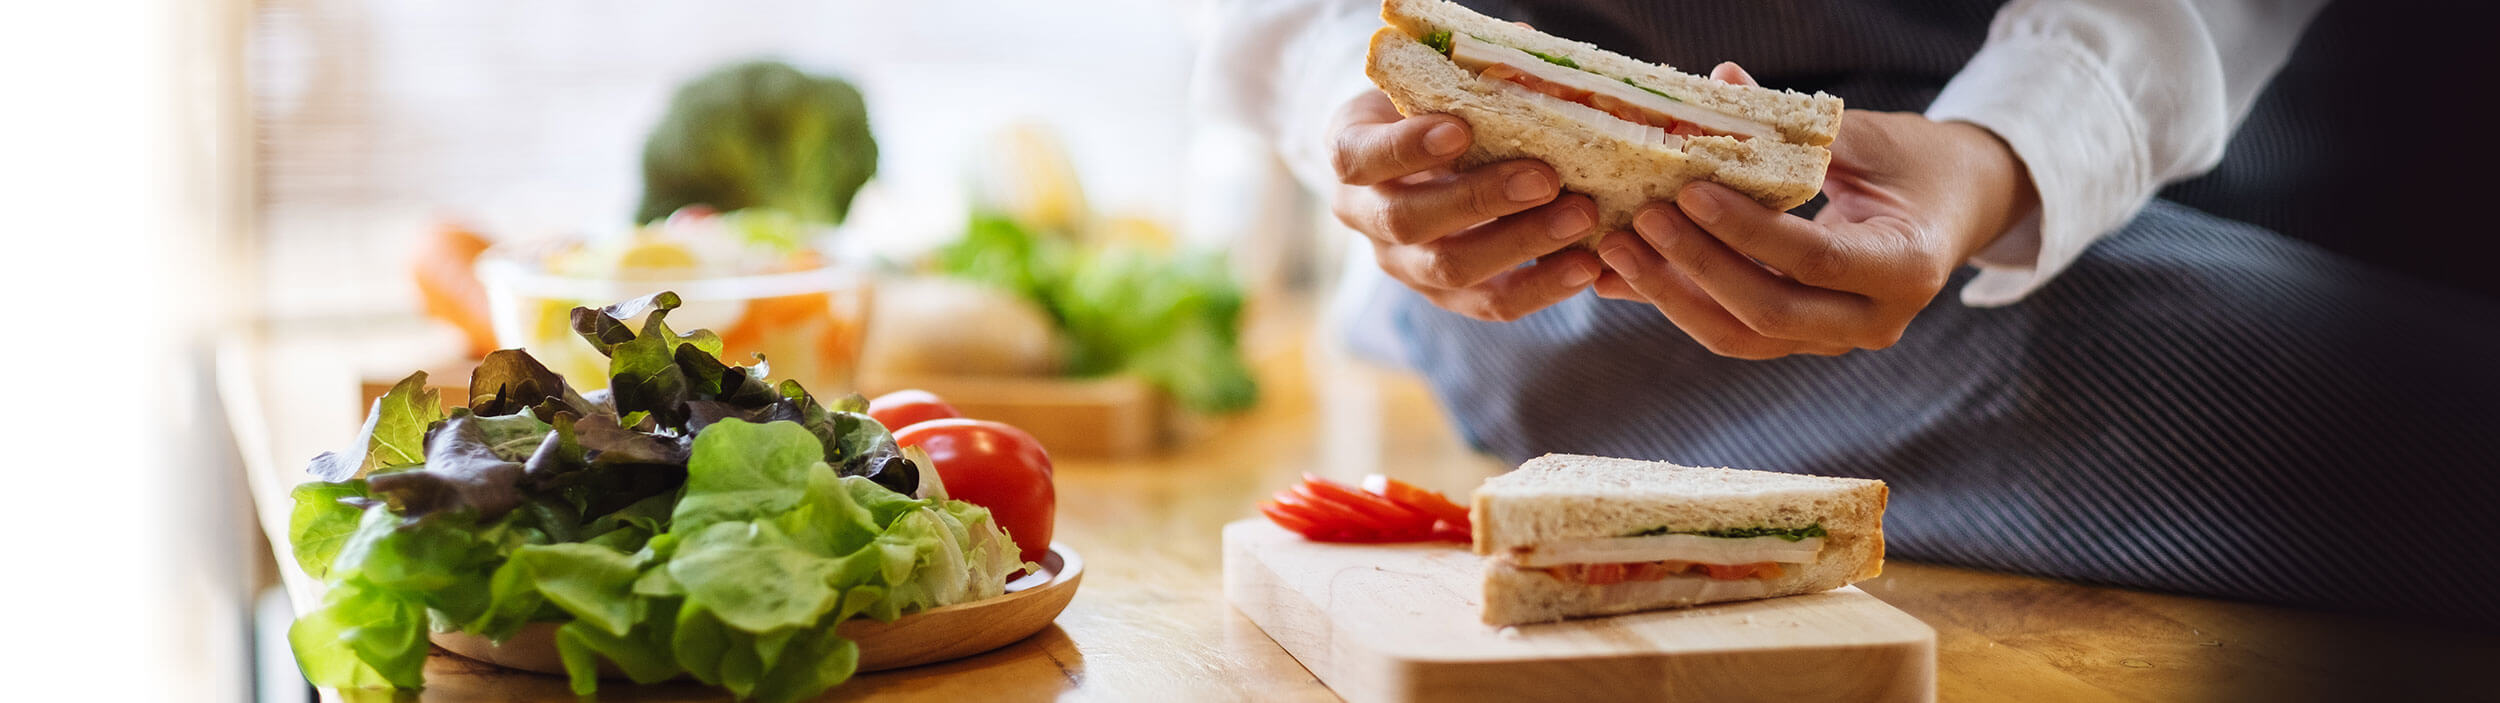 hands holding a sandwich - delivery services in PA - Novick Corporation